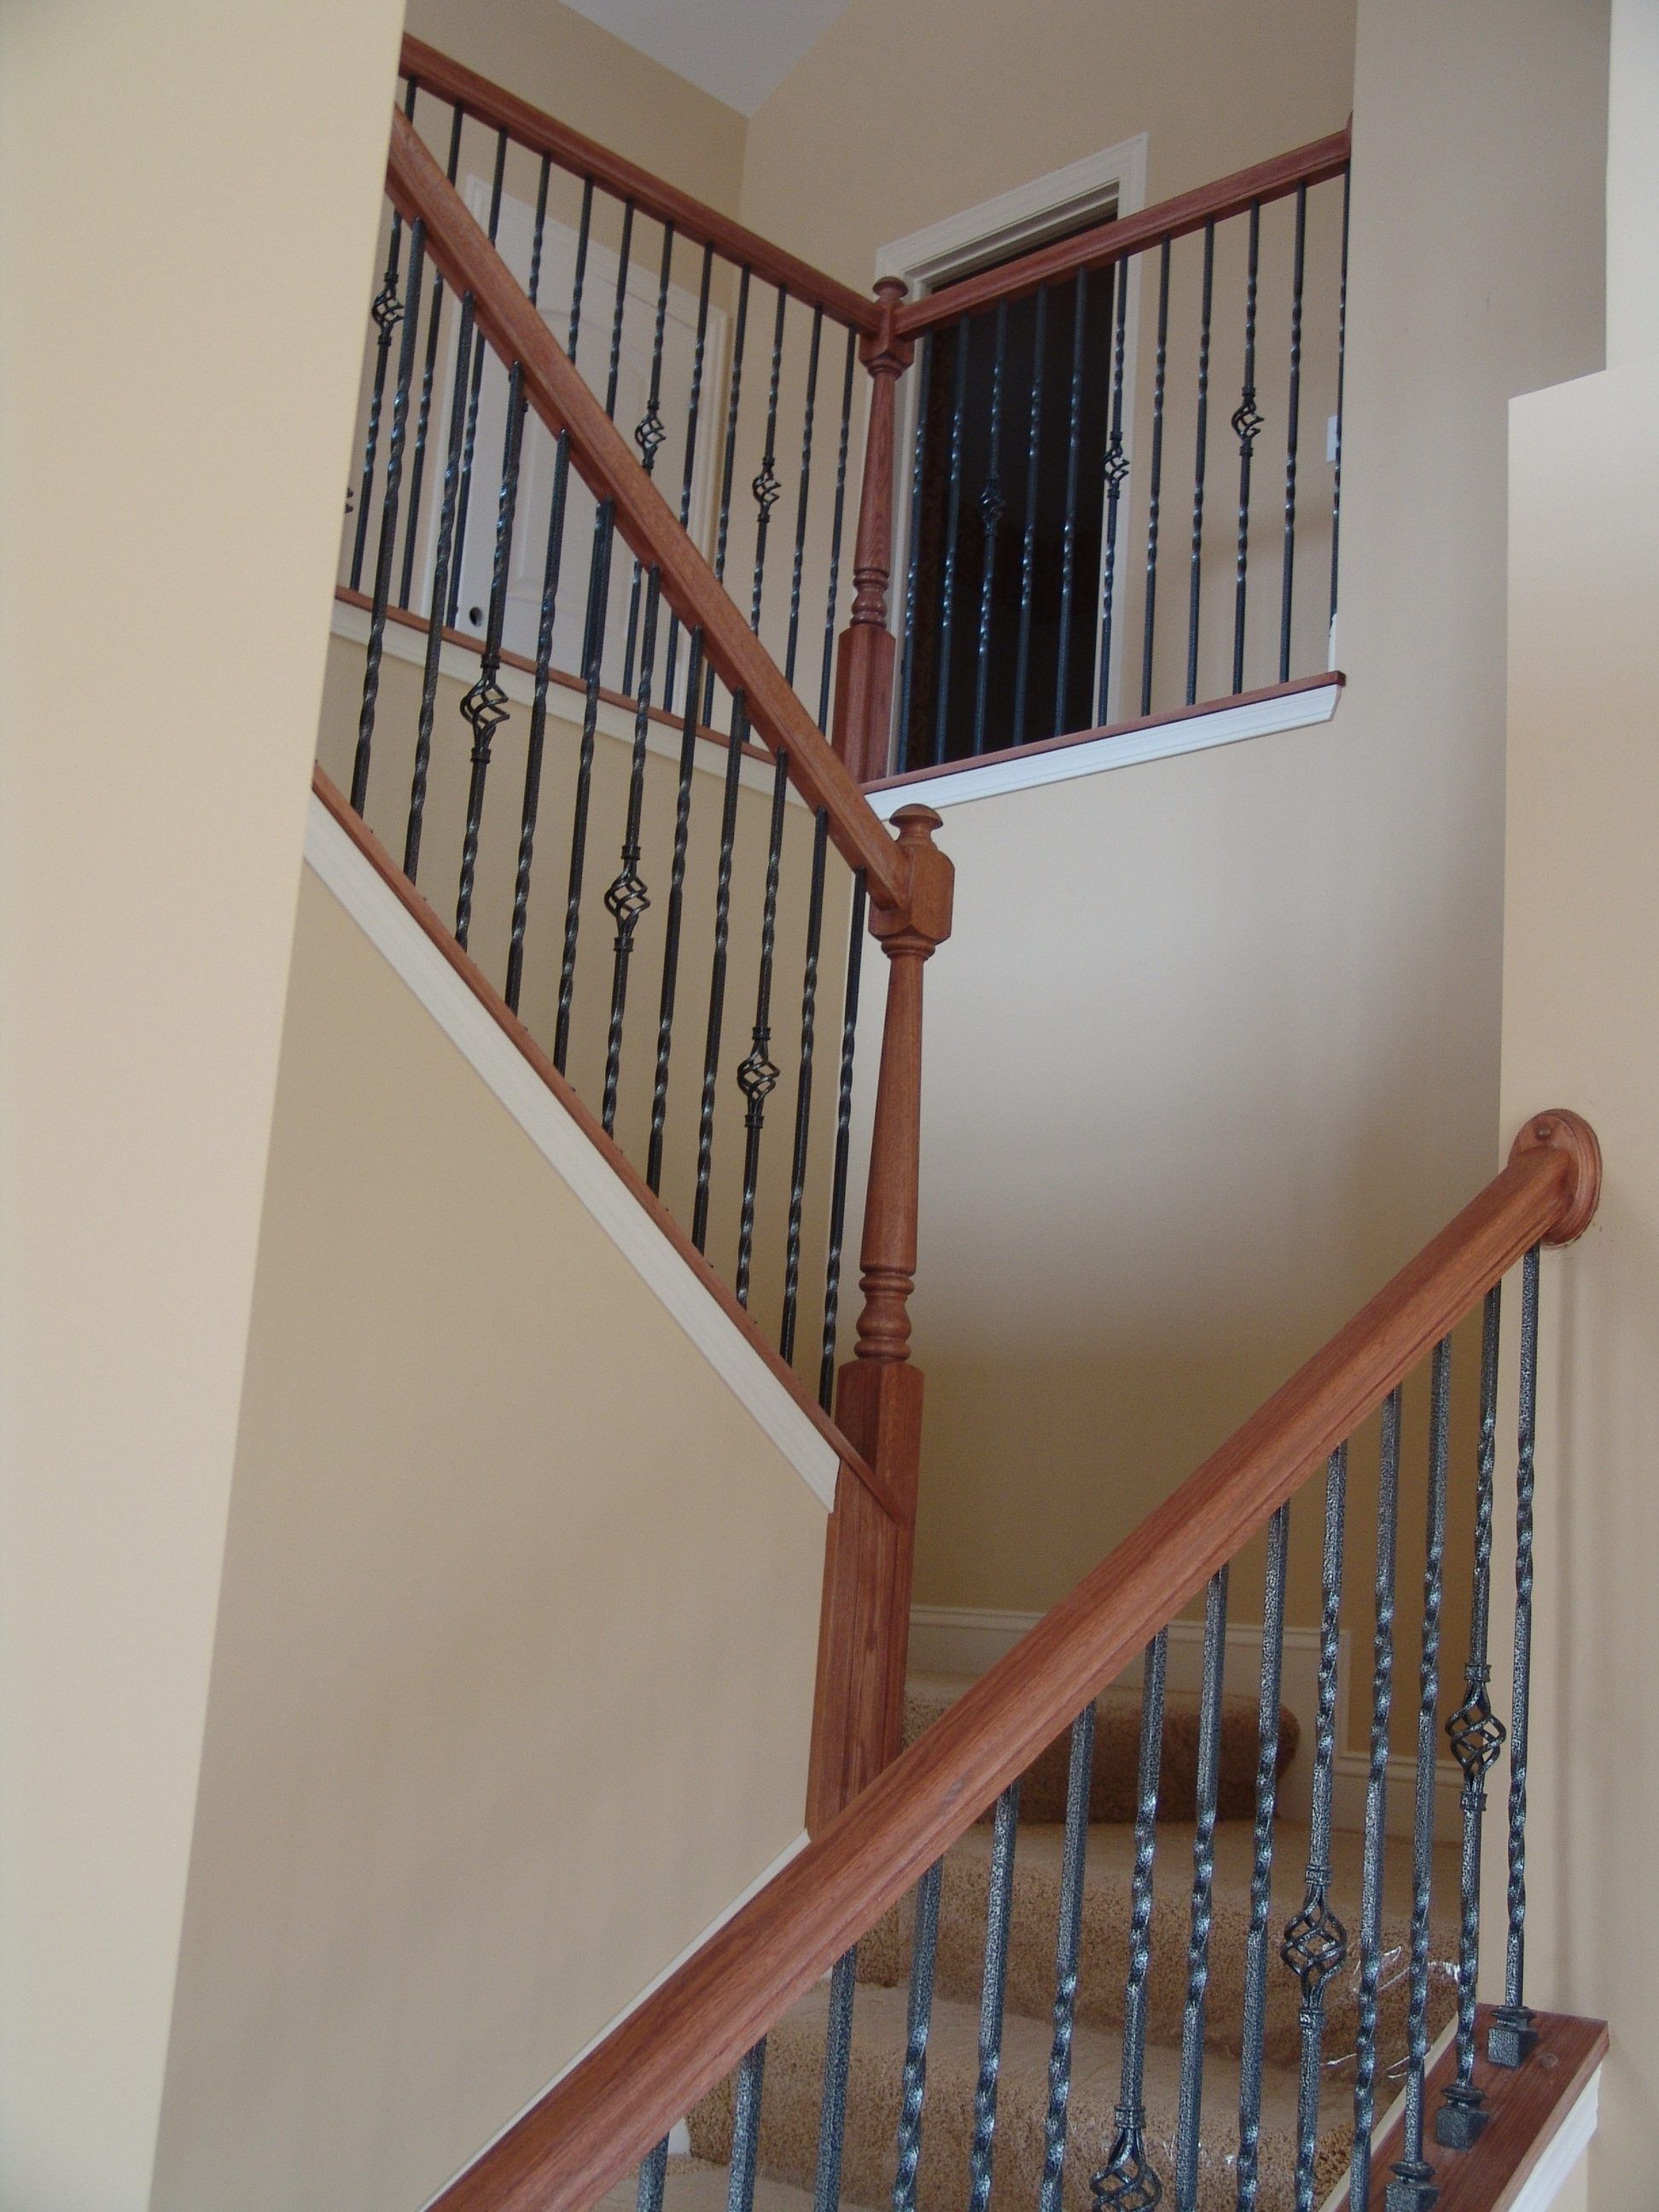 Best 16 1 2 T Double Twist Hollow Iron Baluster Iron Balusters Cheap Stair Parts Stairs 400 x 300